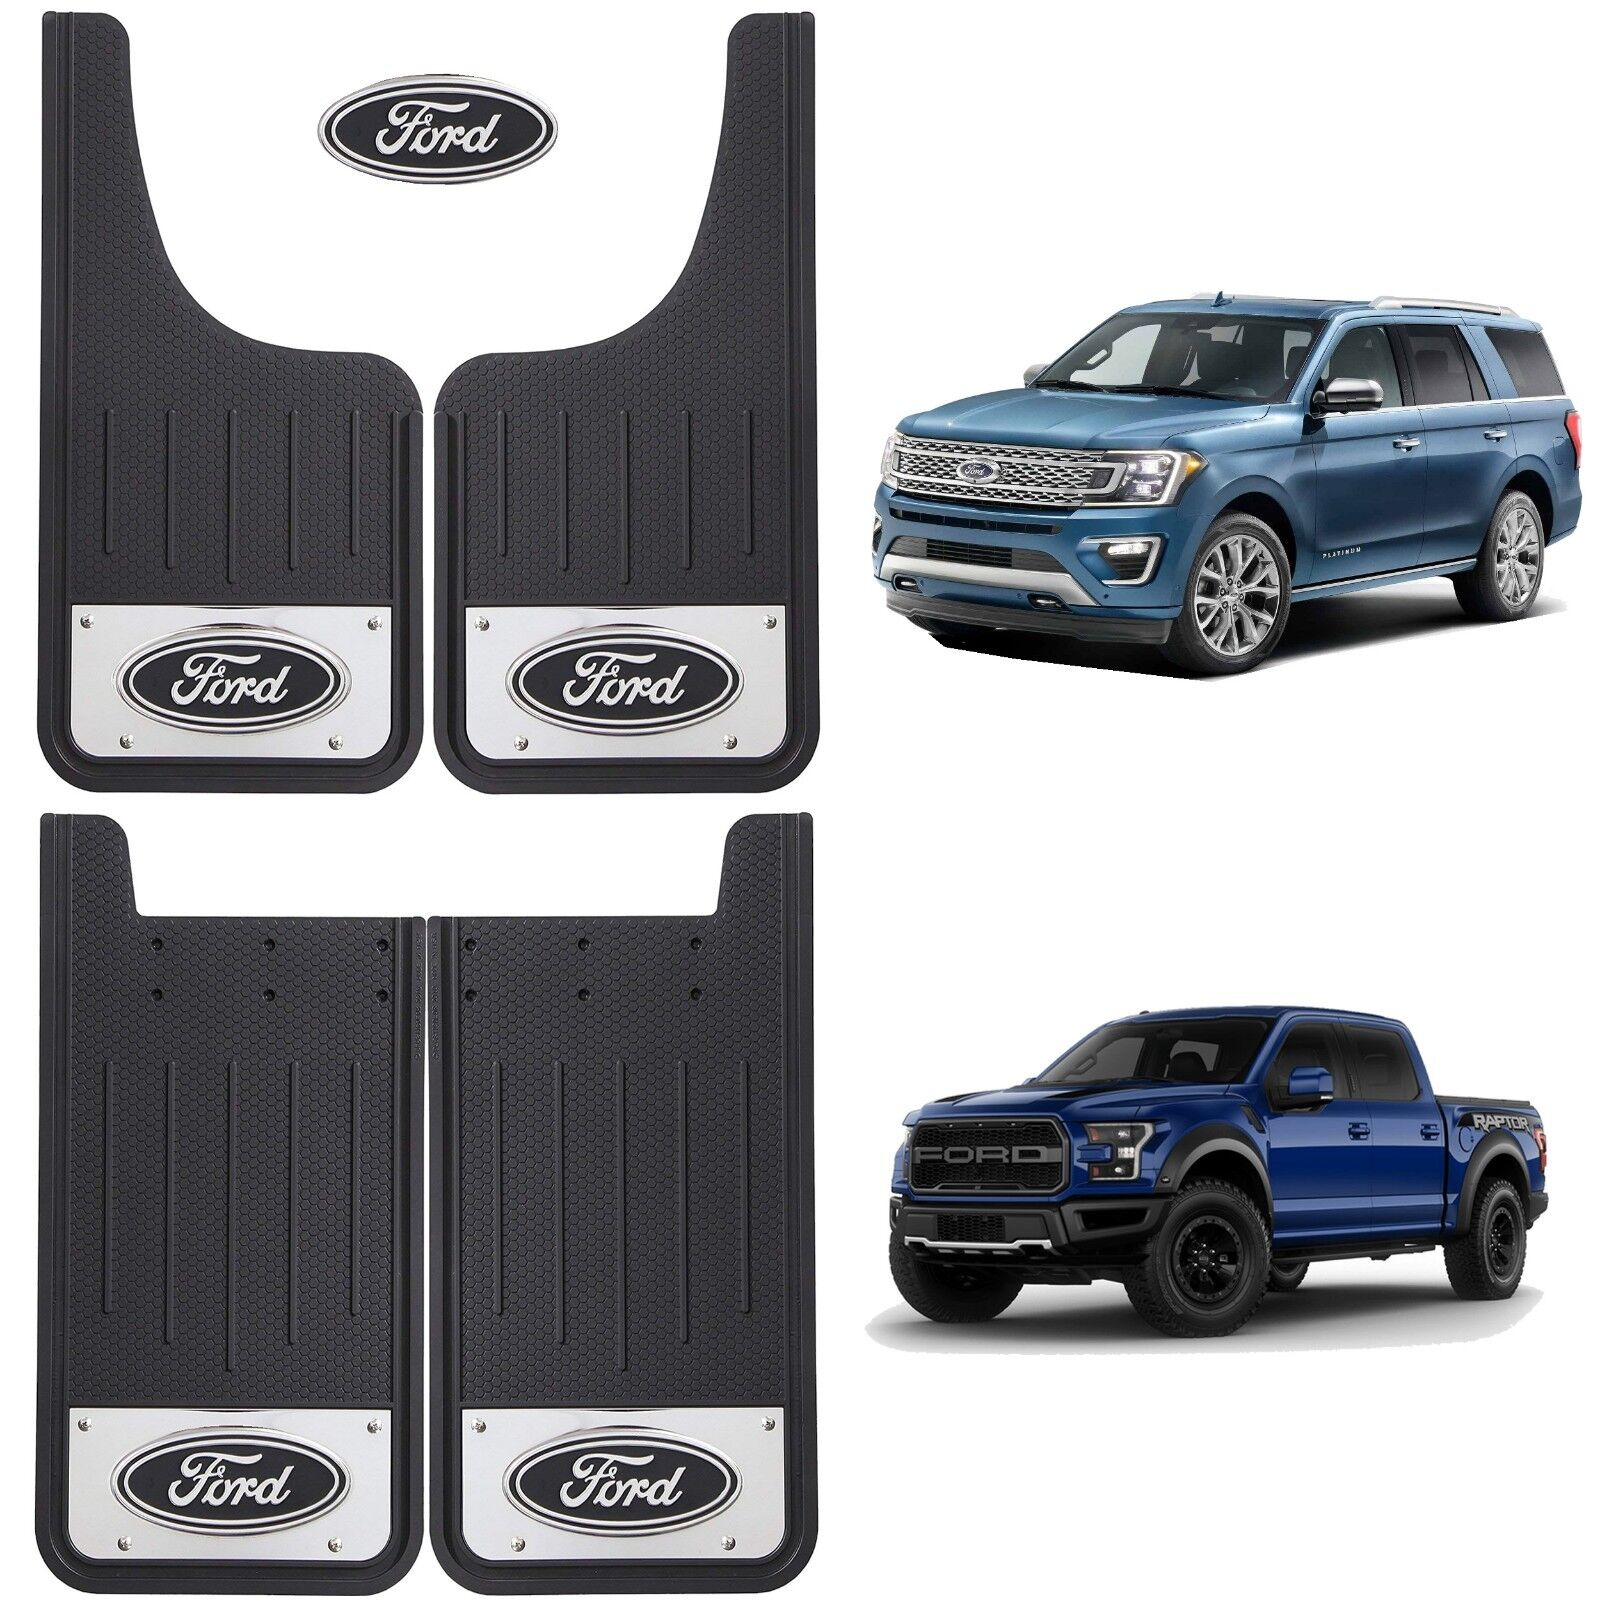 Set of 2 Mud Splash Guards Flaps Ford Oval Logo Car Truck SUV Universal Fit